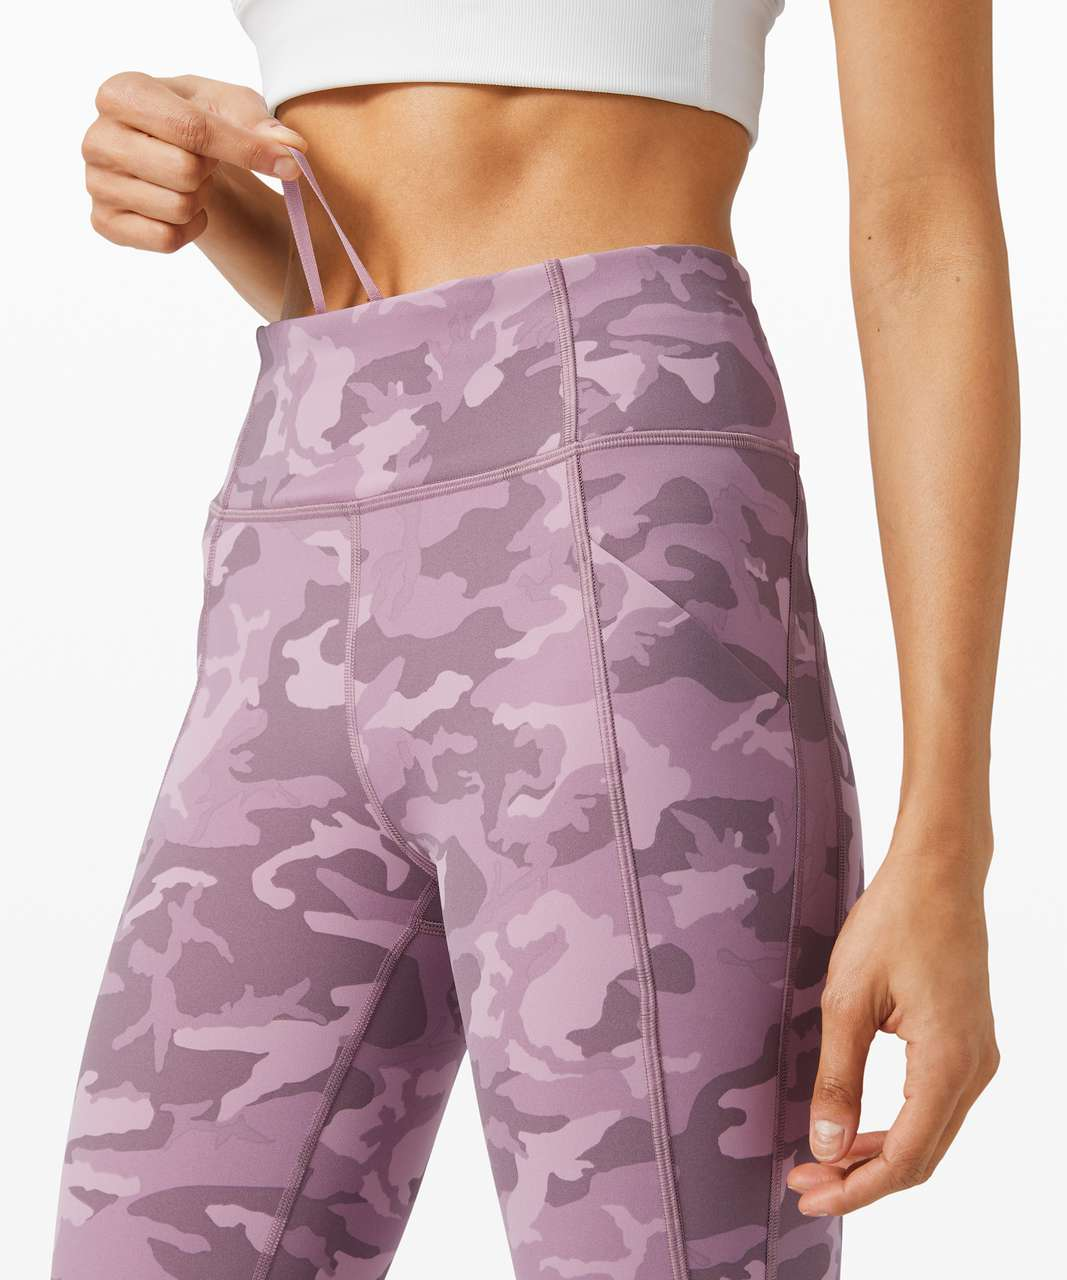 "Lululemon Time To Sweat Crop 23"" - Incognito Camo Pink Taupe Multi"